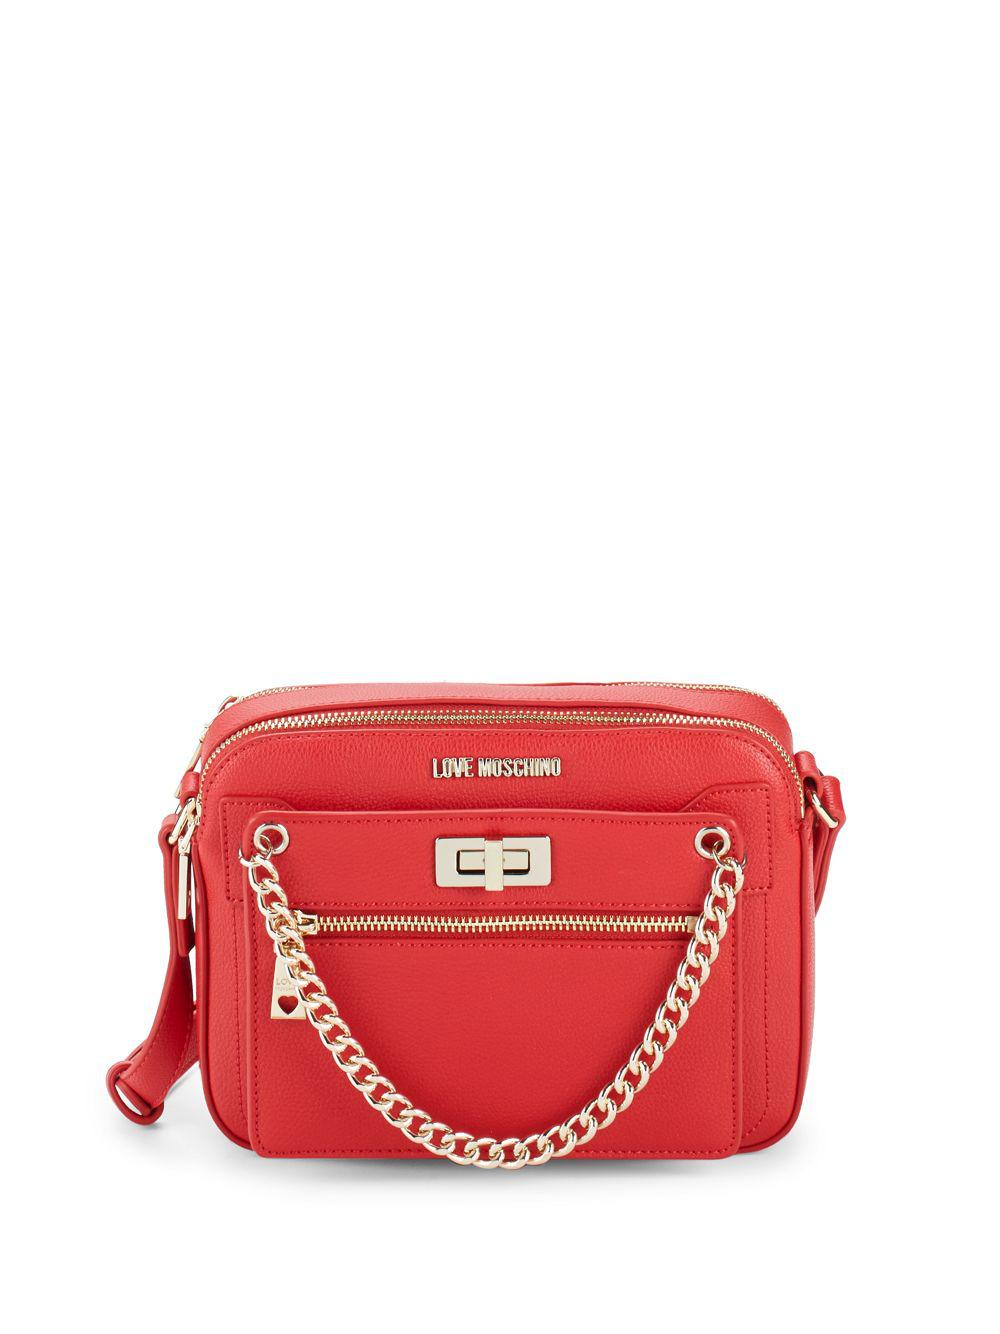 Lyst - Love Moschino Logo Faux Leather Crossbody Bag in Red 7a84ebab2d596